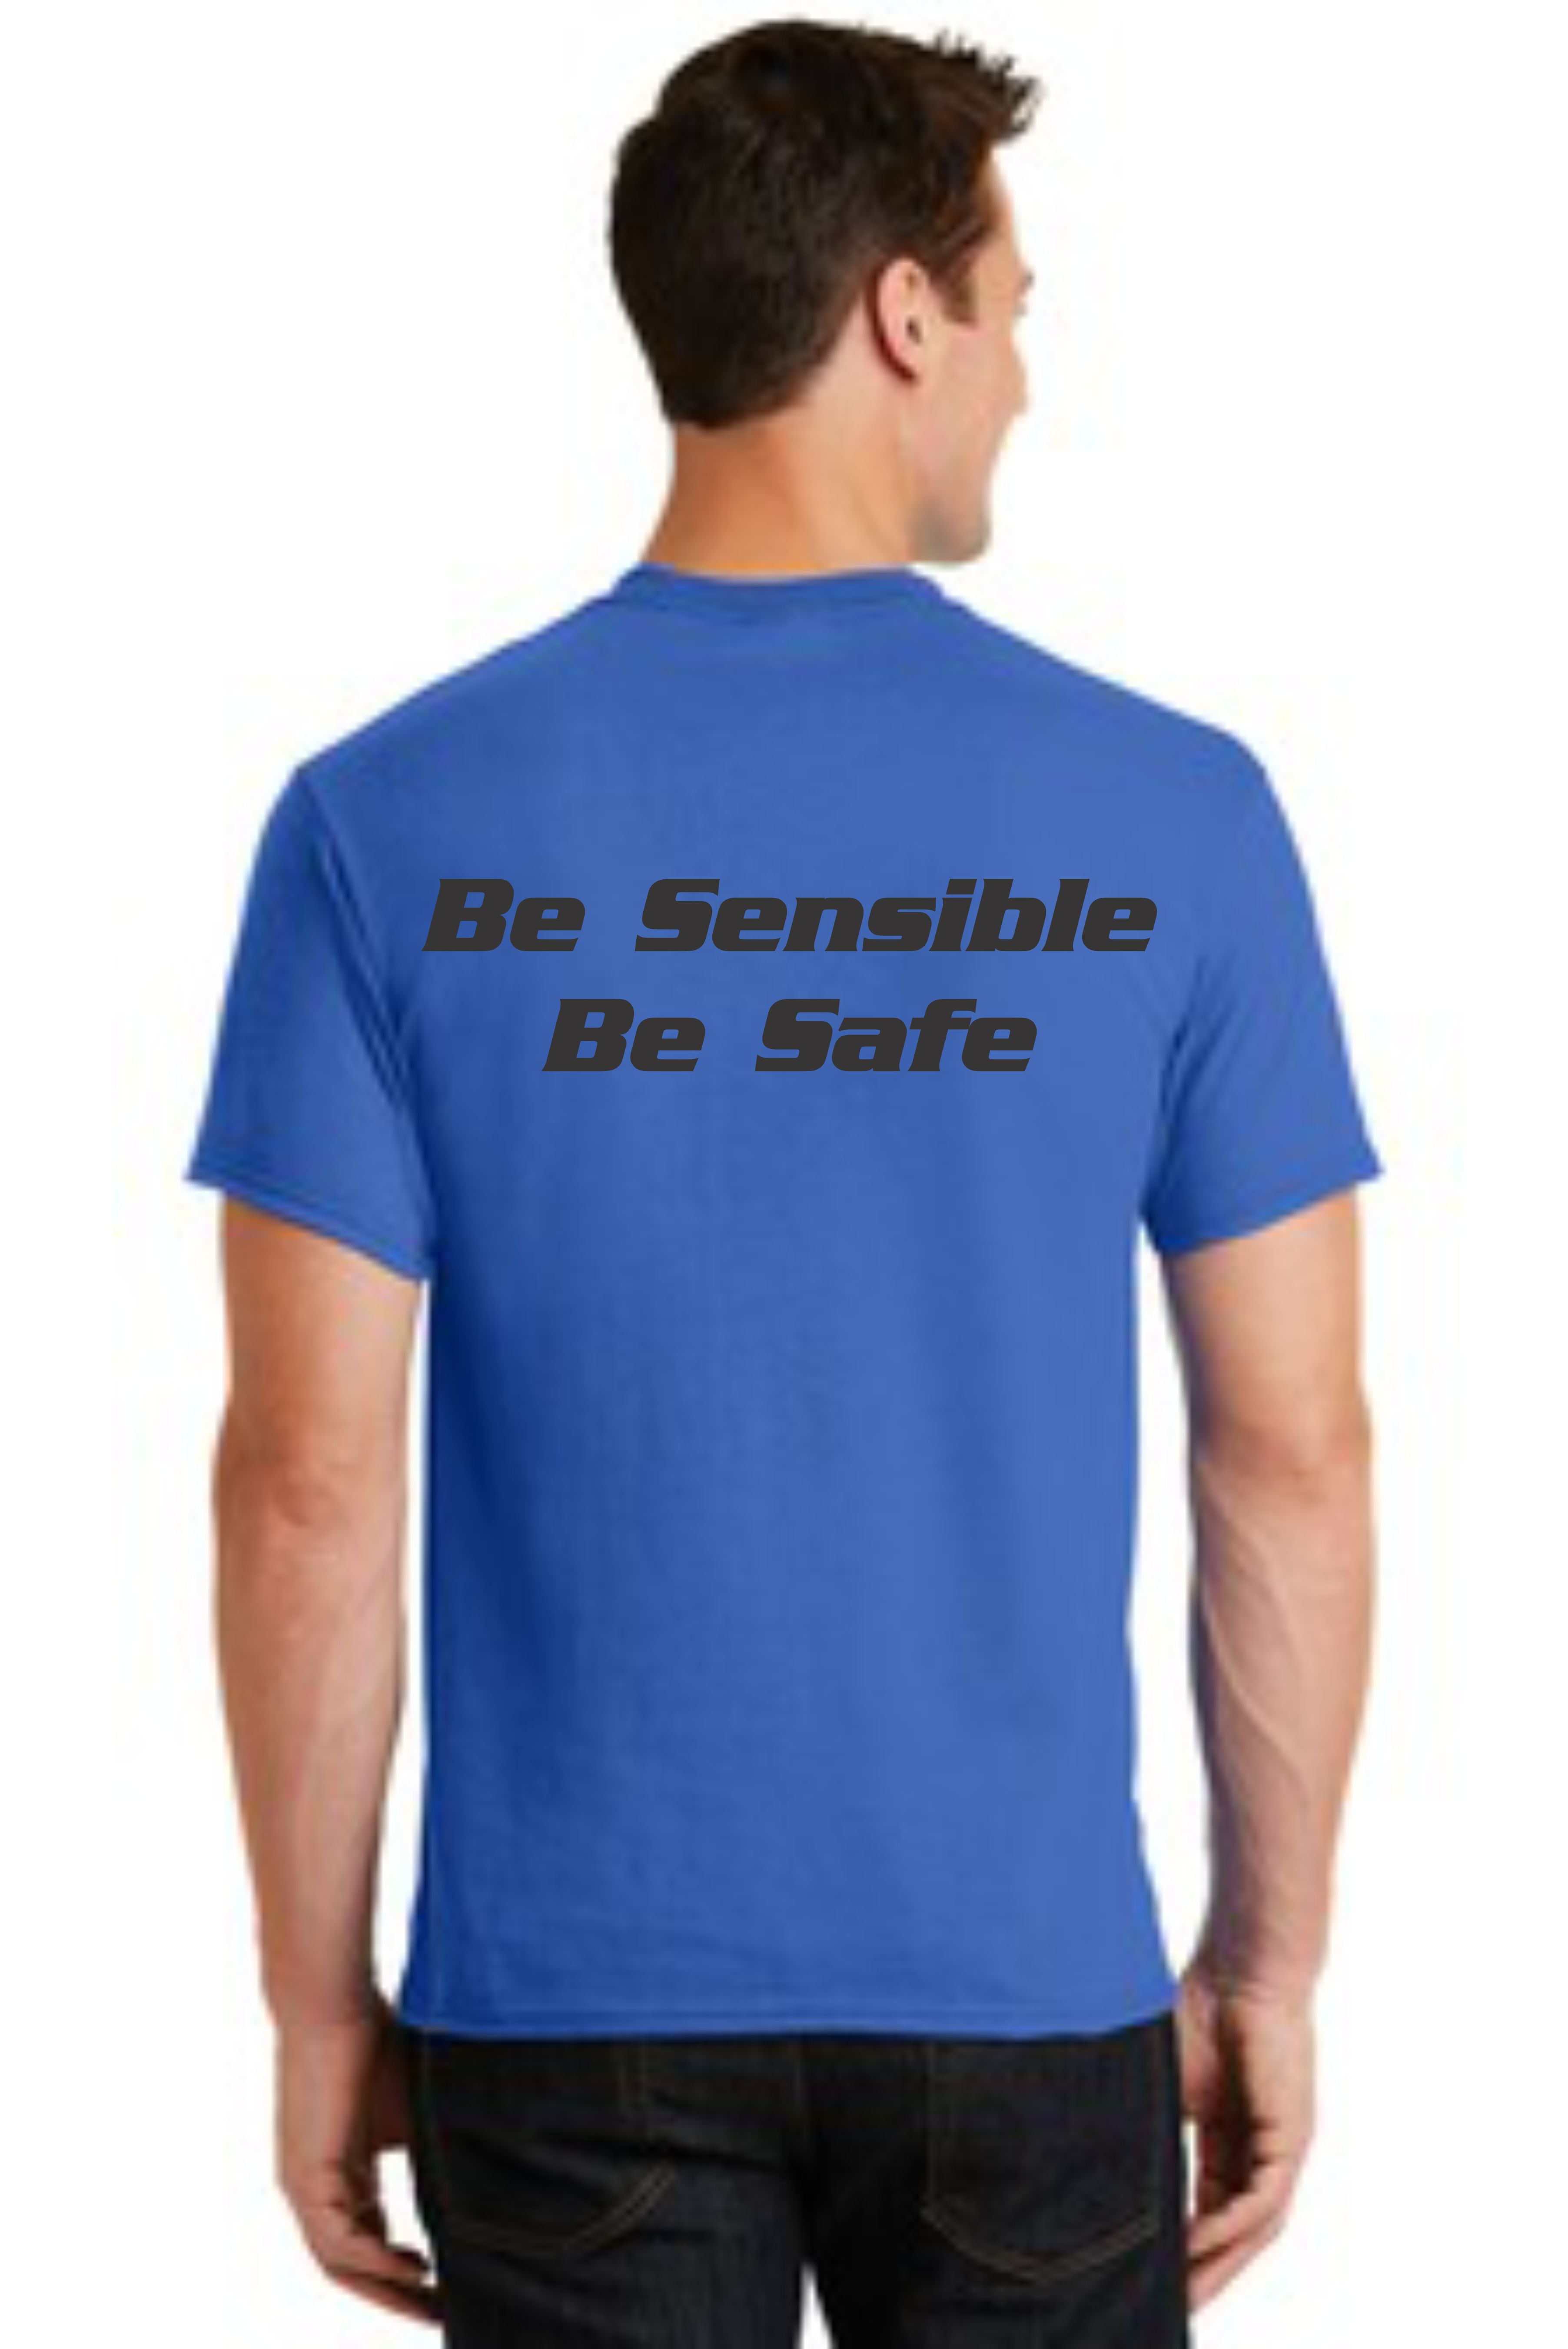 SAFETY T-SHIRT -- BE SENSIBLE BE SAFE